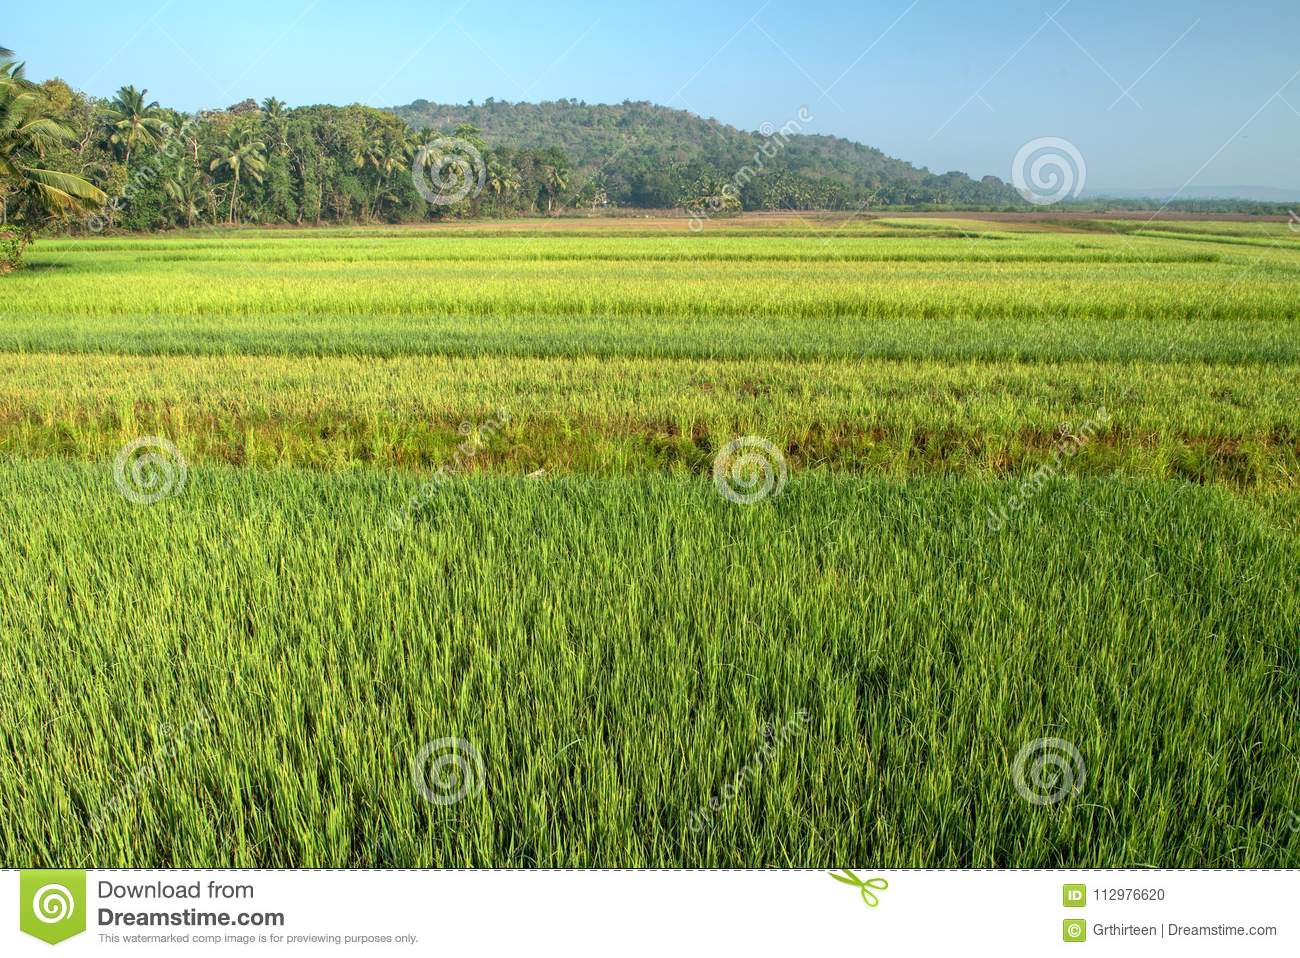 Rice field in India at morning.